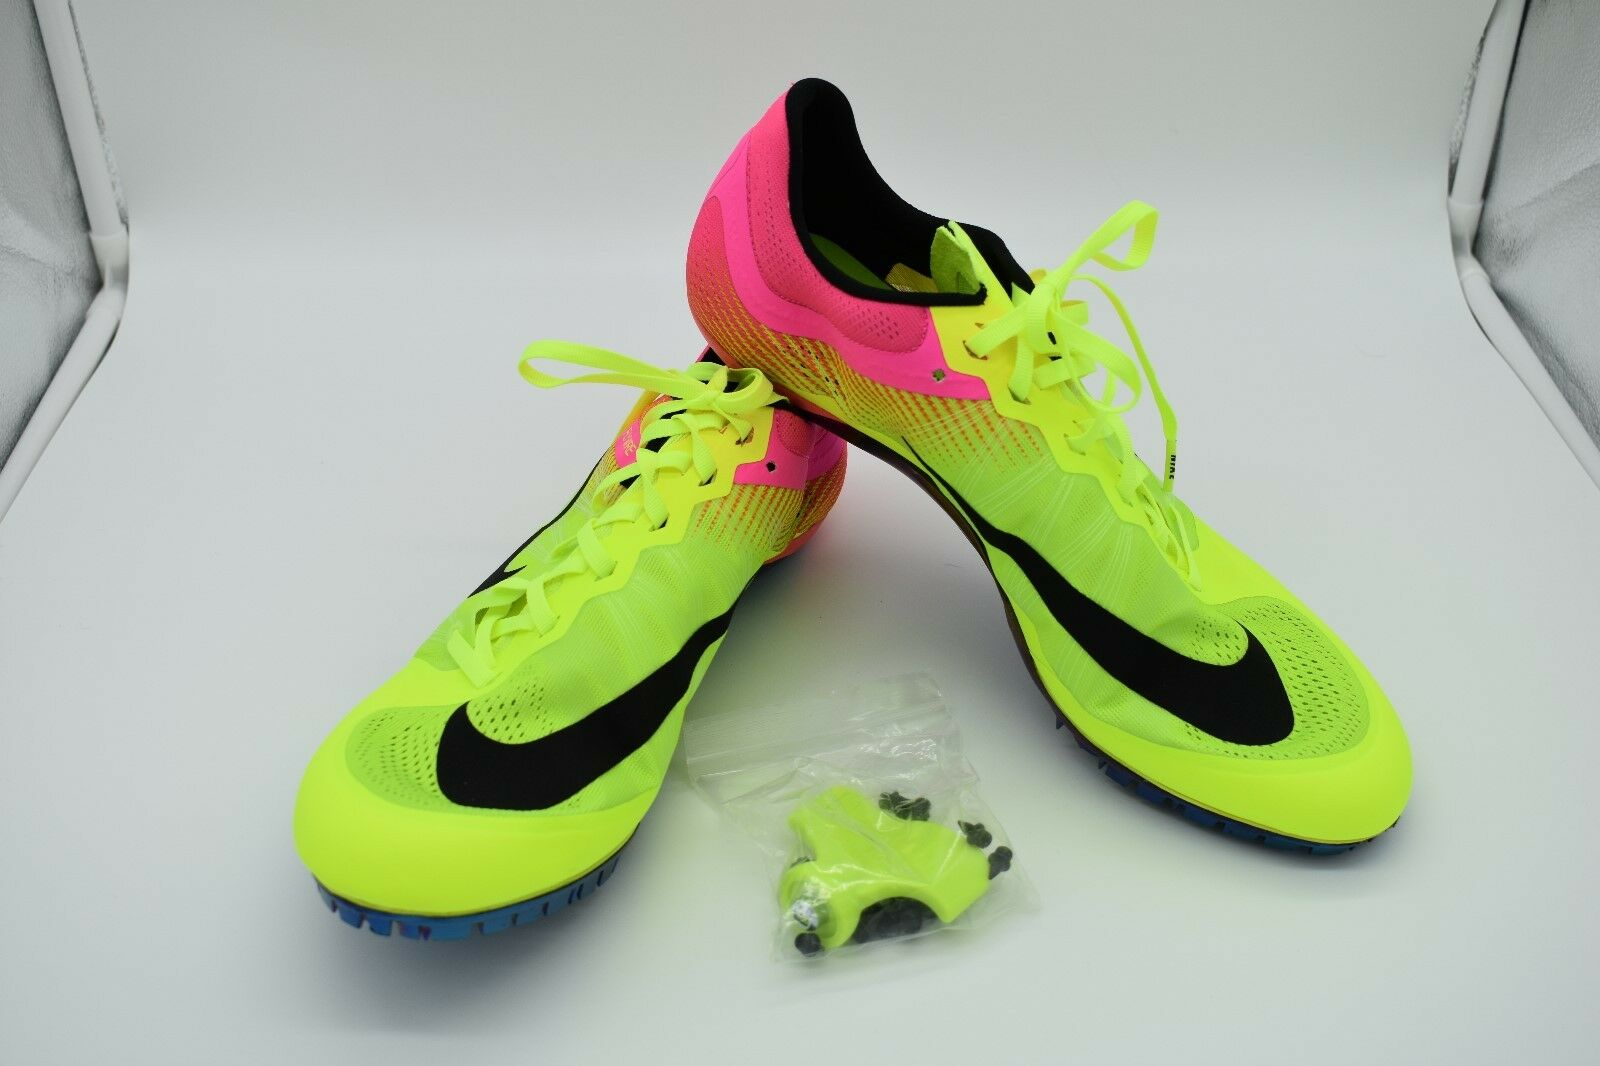 Nike Zoom JA Fly 2 Men's Track Spikes 705373-999 Volt Pink Comfortable best-selling model of the brand